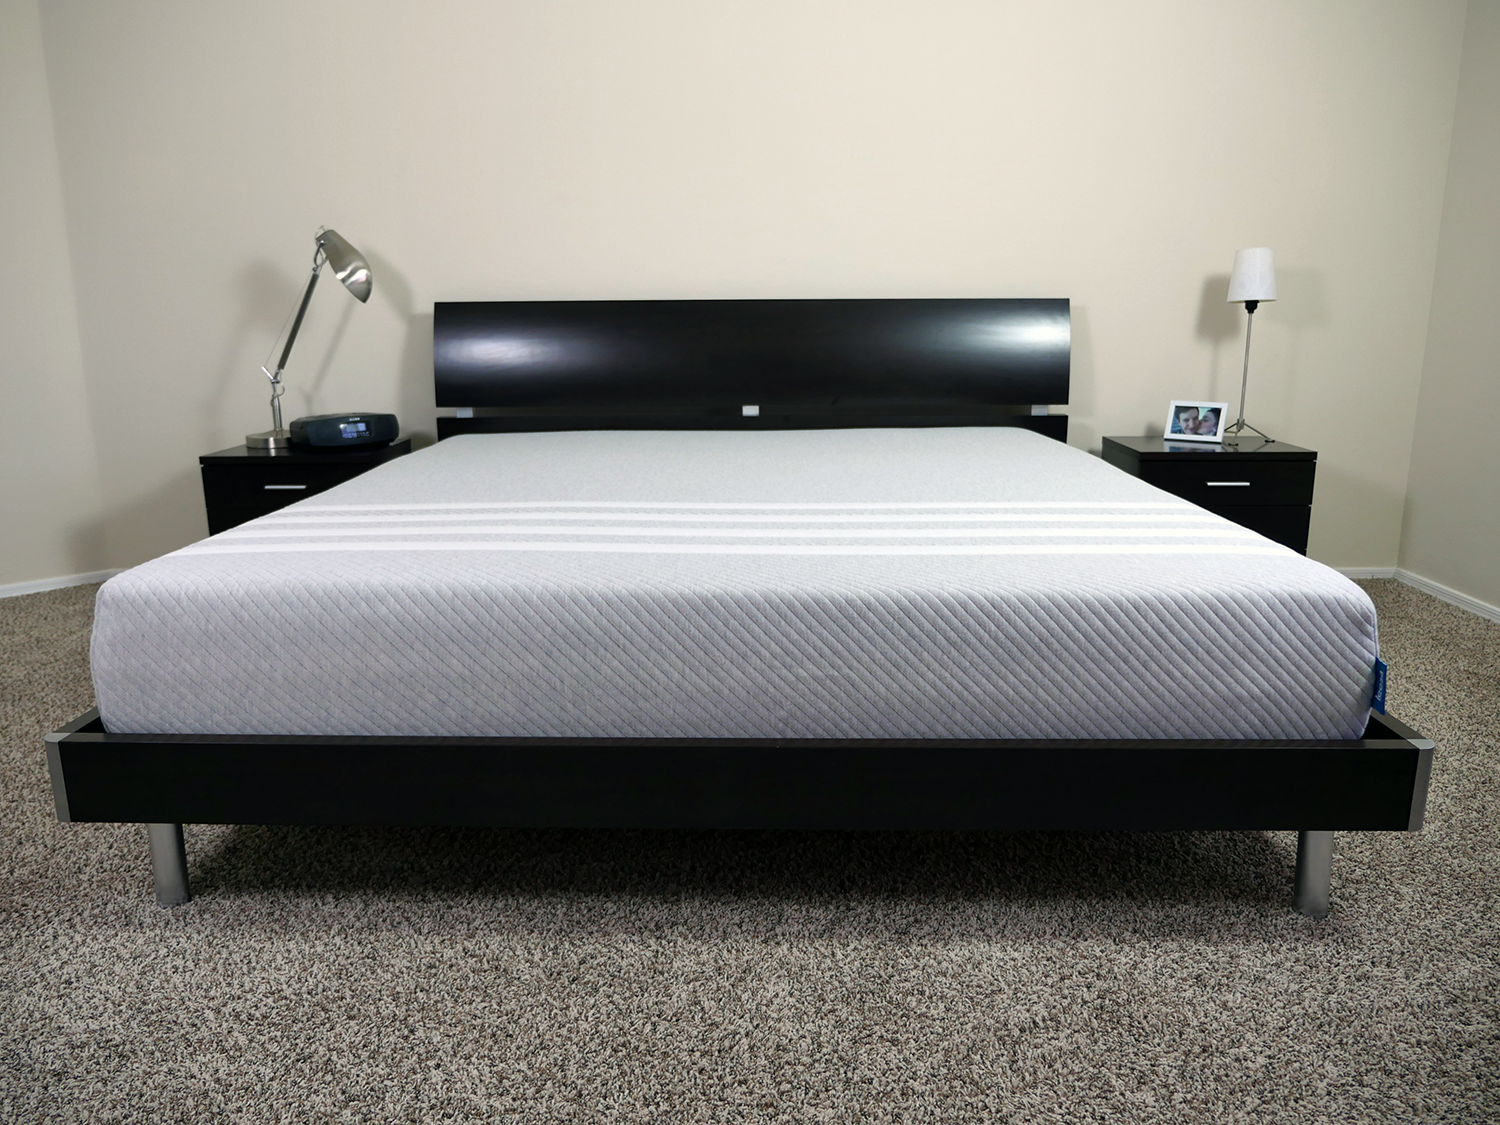 Casper Vs Leesa Vs Tuft Needle Vs Saatva Mattress Review Sleepopolis Mattress Comparison Online Mattress Mattresses Reviews